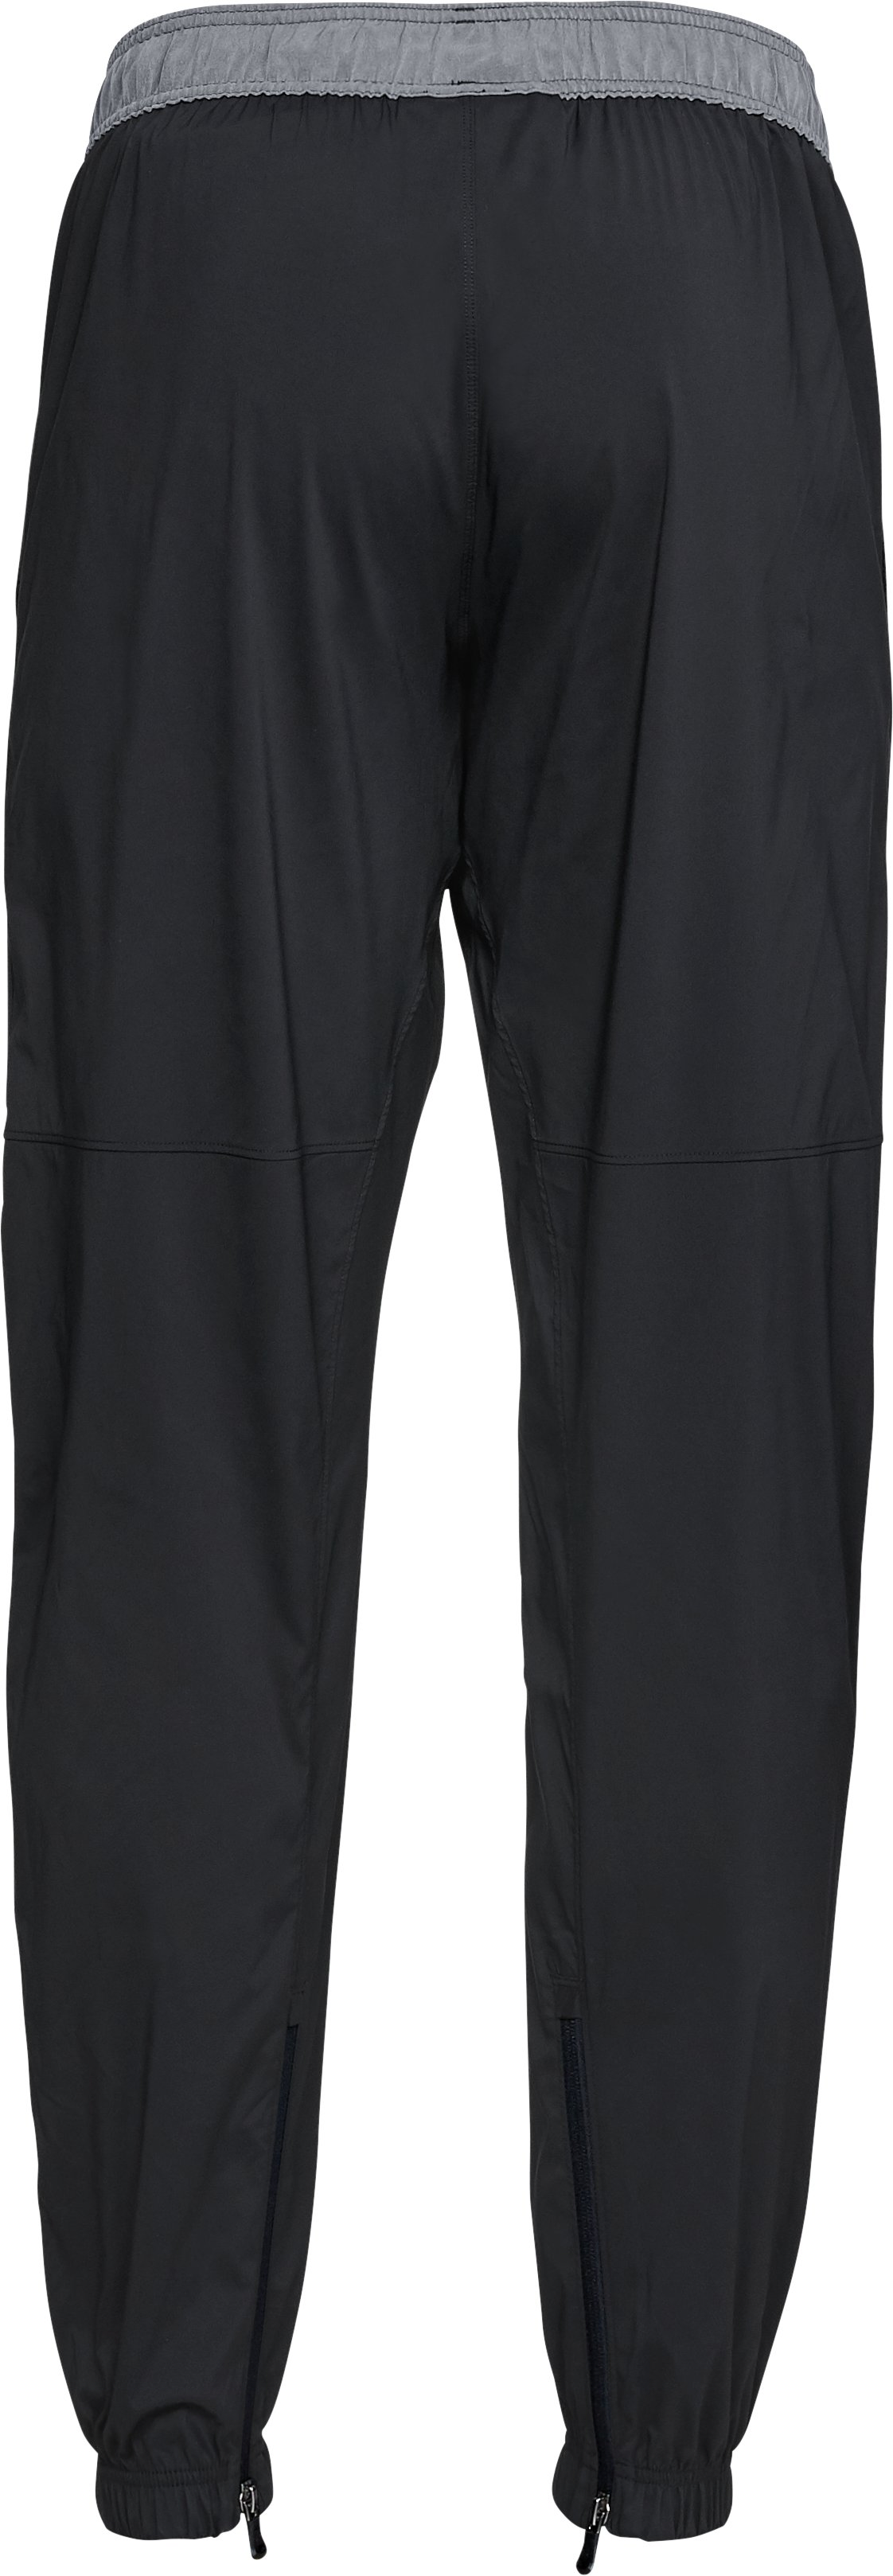 Men's SC30 Woven Pants, Black ,